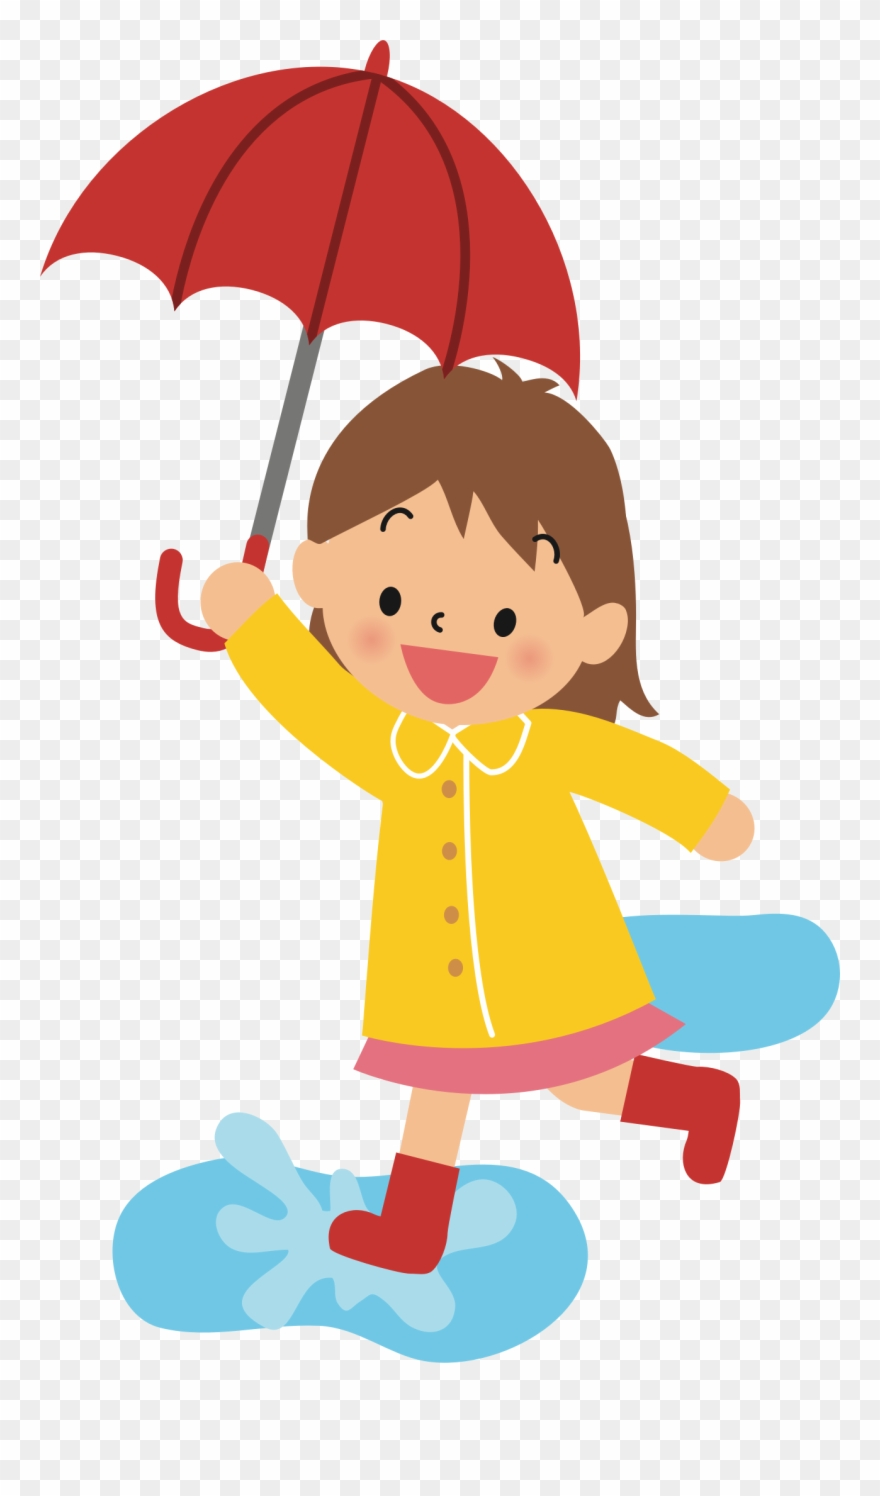 Holdingumbrella clipart clipart free library With Umbrella Silhouette At Getdrawings Com Free - Girl With ... clipart free library